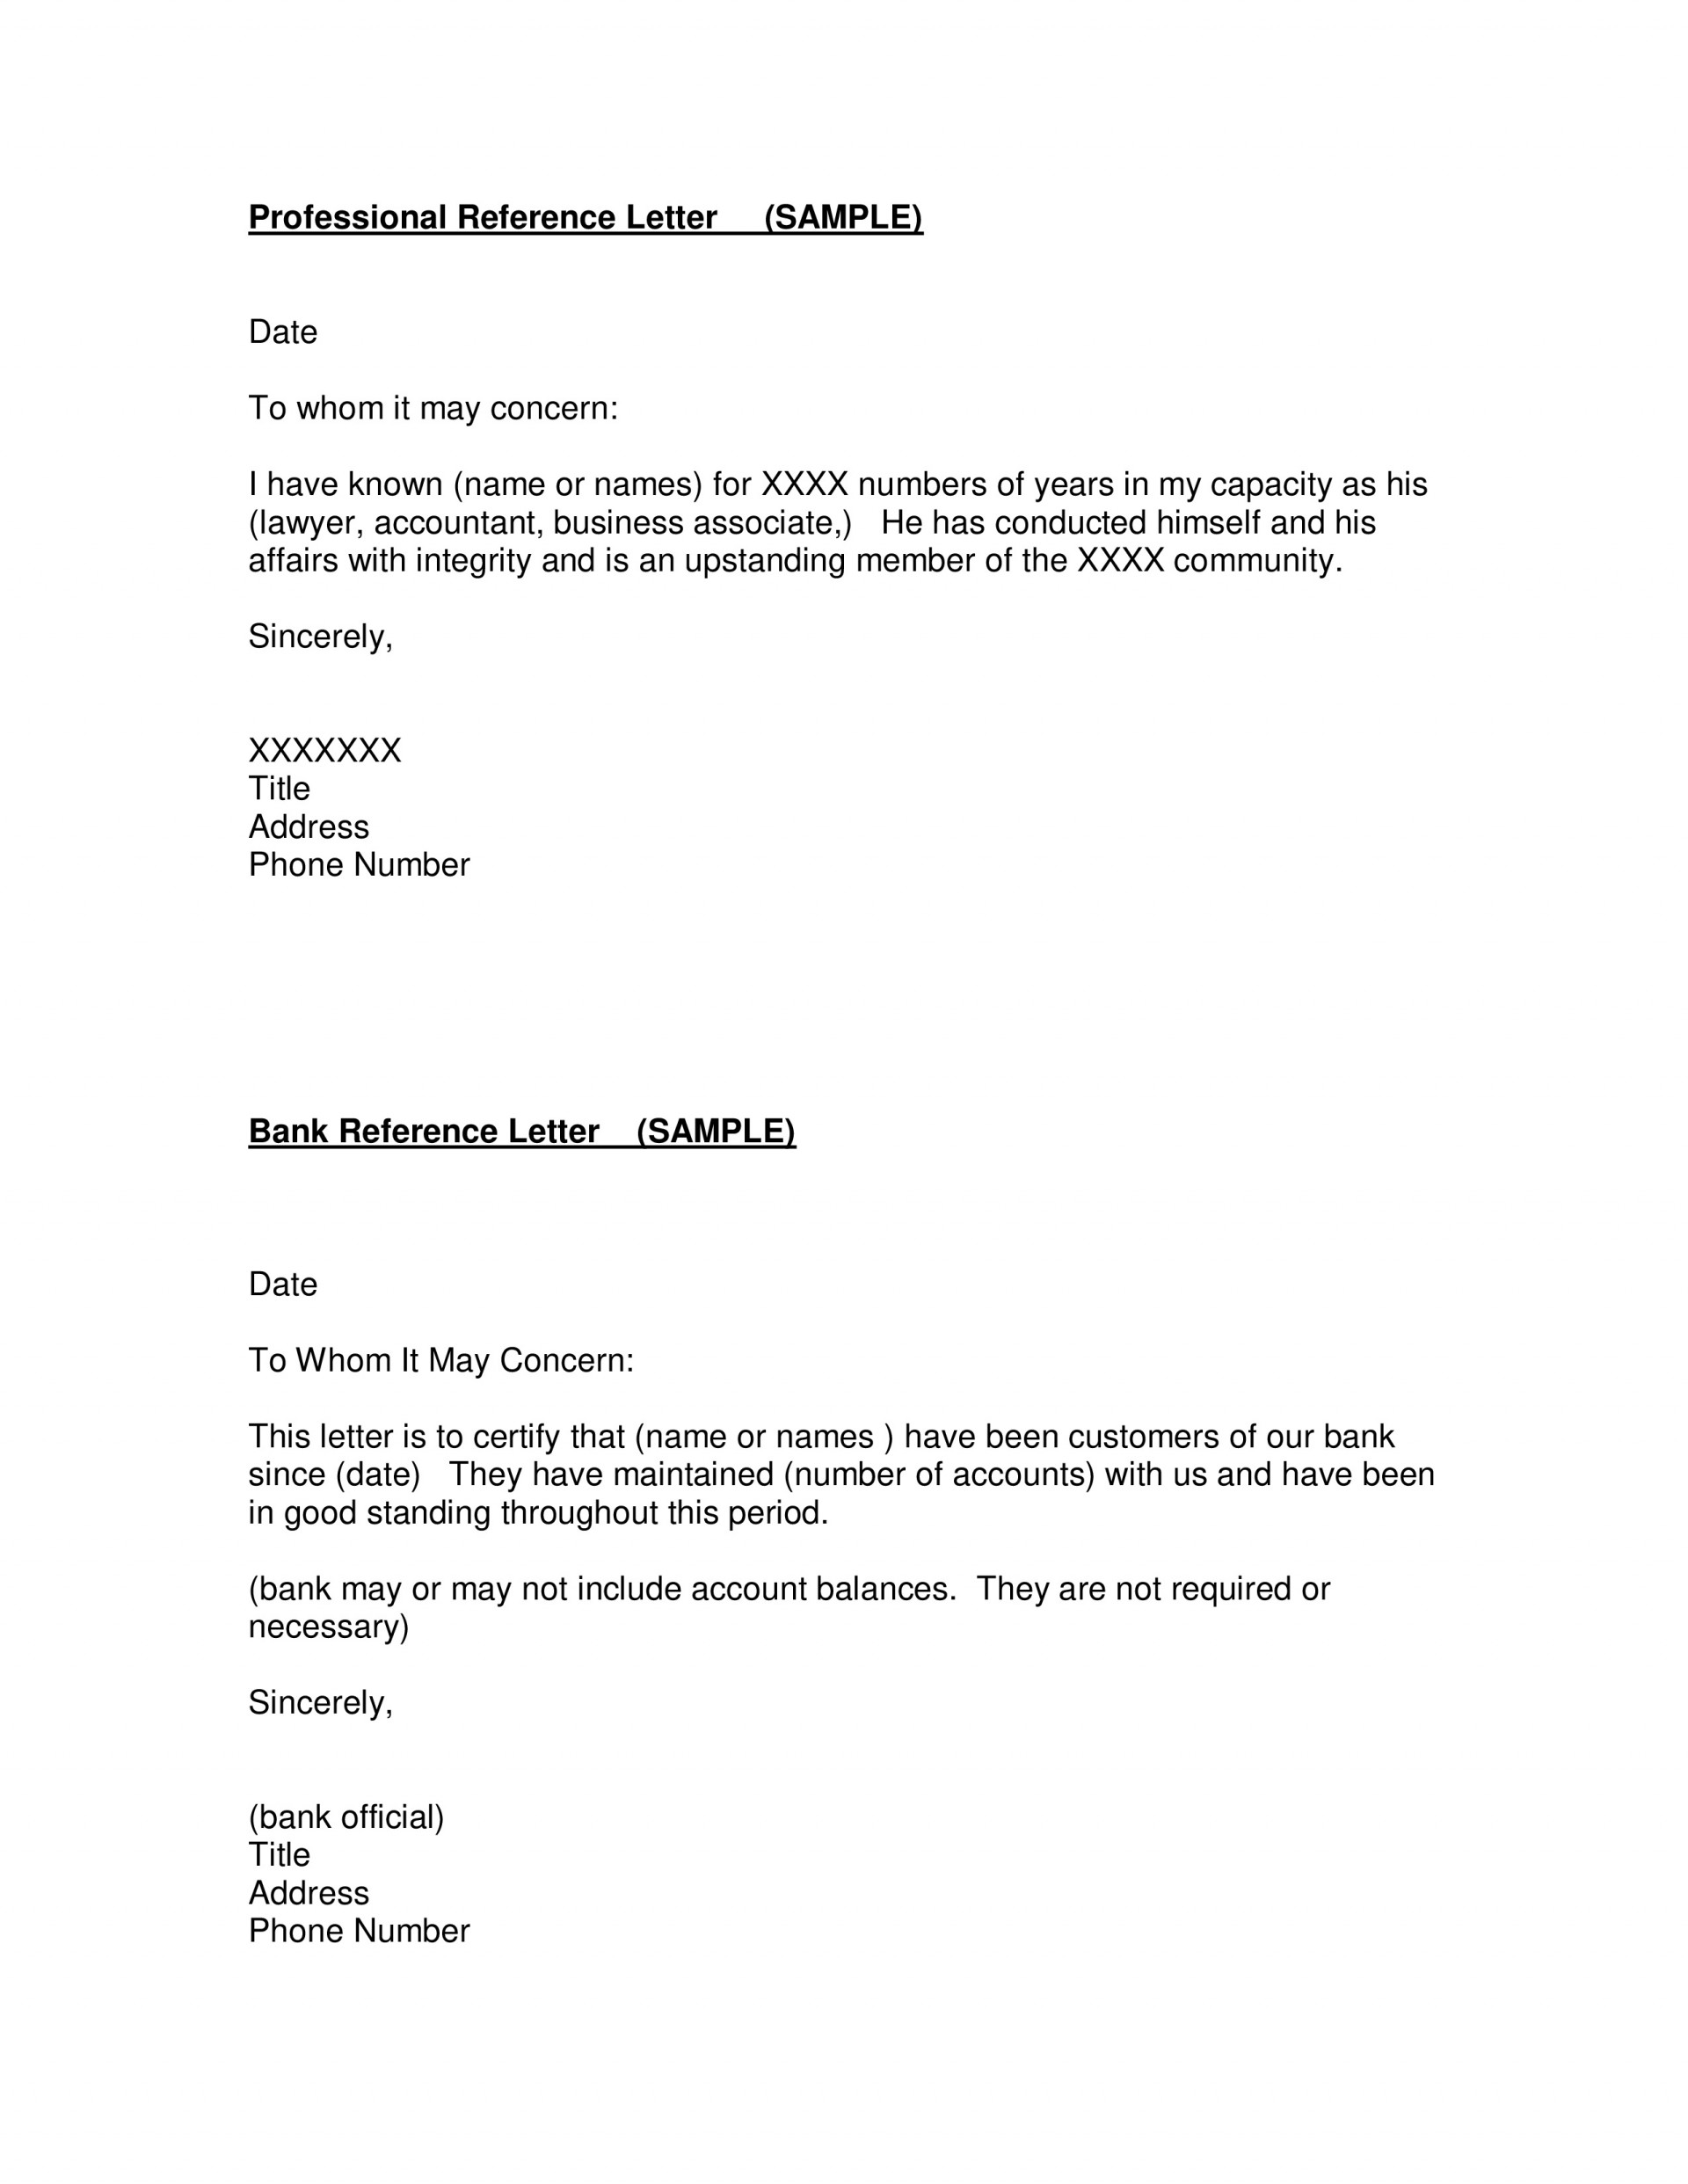 005 Stunning Professional Reference Letter Template Design  Nursing Free Character1920